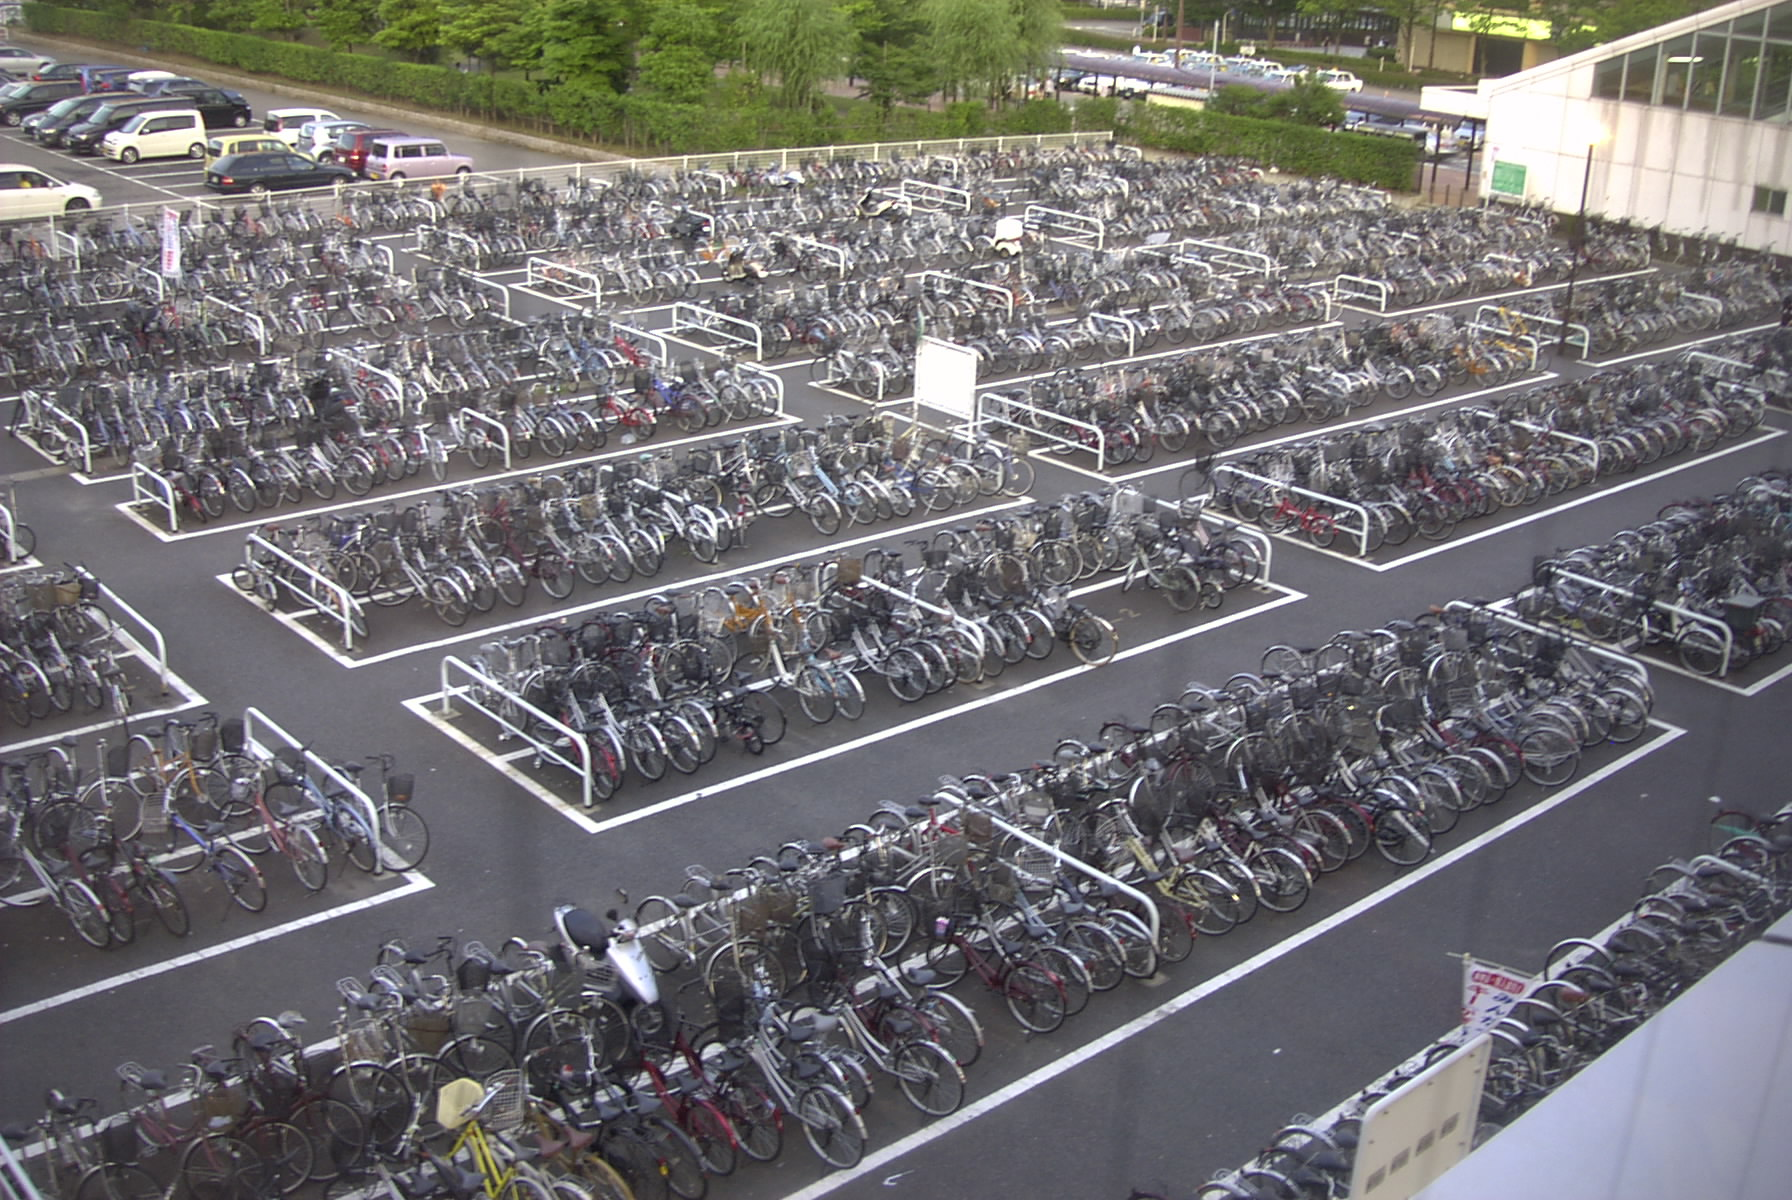 Denmark Bikes Buy In Sri Lanka Hundreds of bicycles grouped